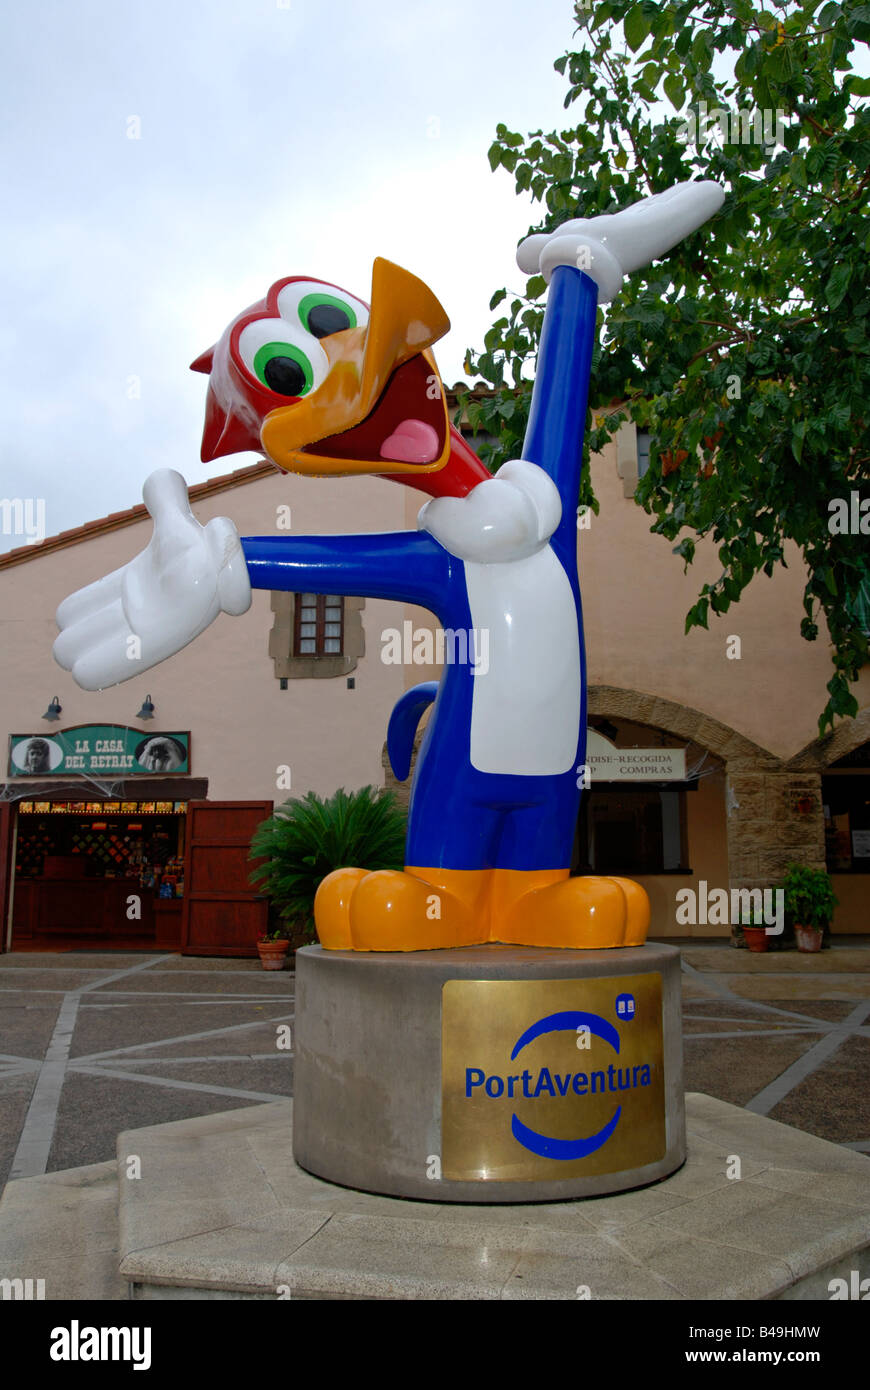 the 'woody woodpecker' statue at the entrance to portaventura theme park at salou in spain - Stock Image